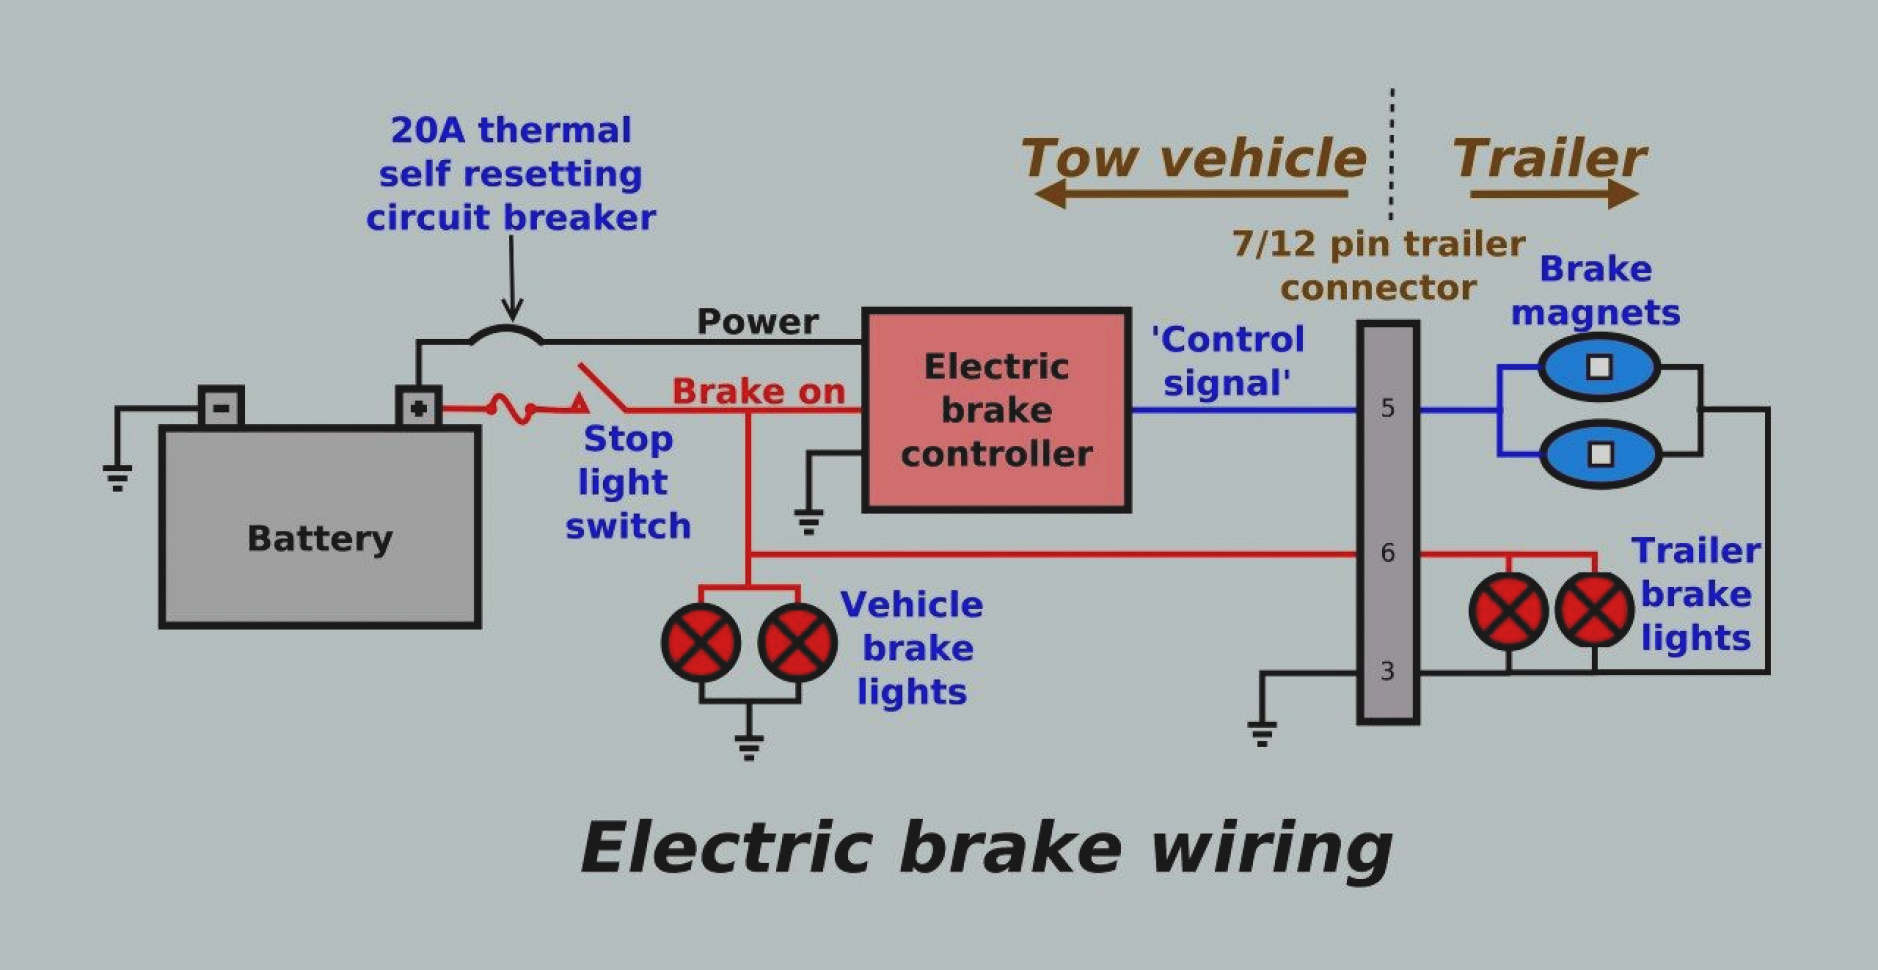 Trailer Brake Wiring Diagram 7 Way Australian Standard | Wiring Library - Trailer Brake Wiring Diagram 7 Way Australian Standard